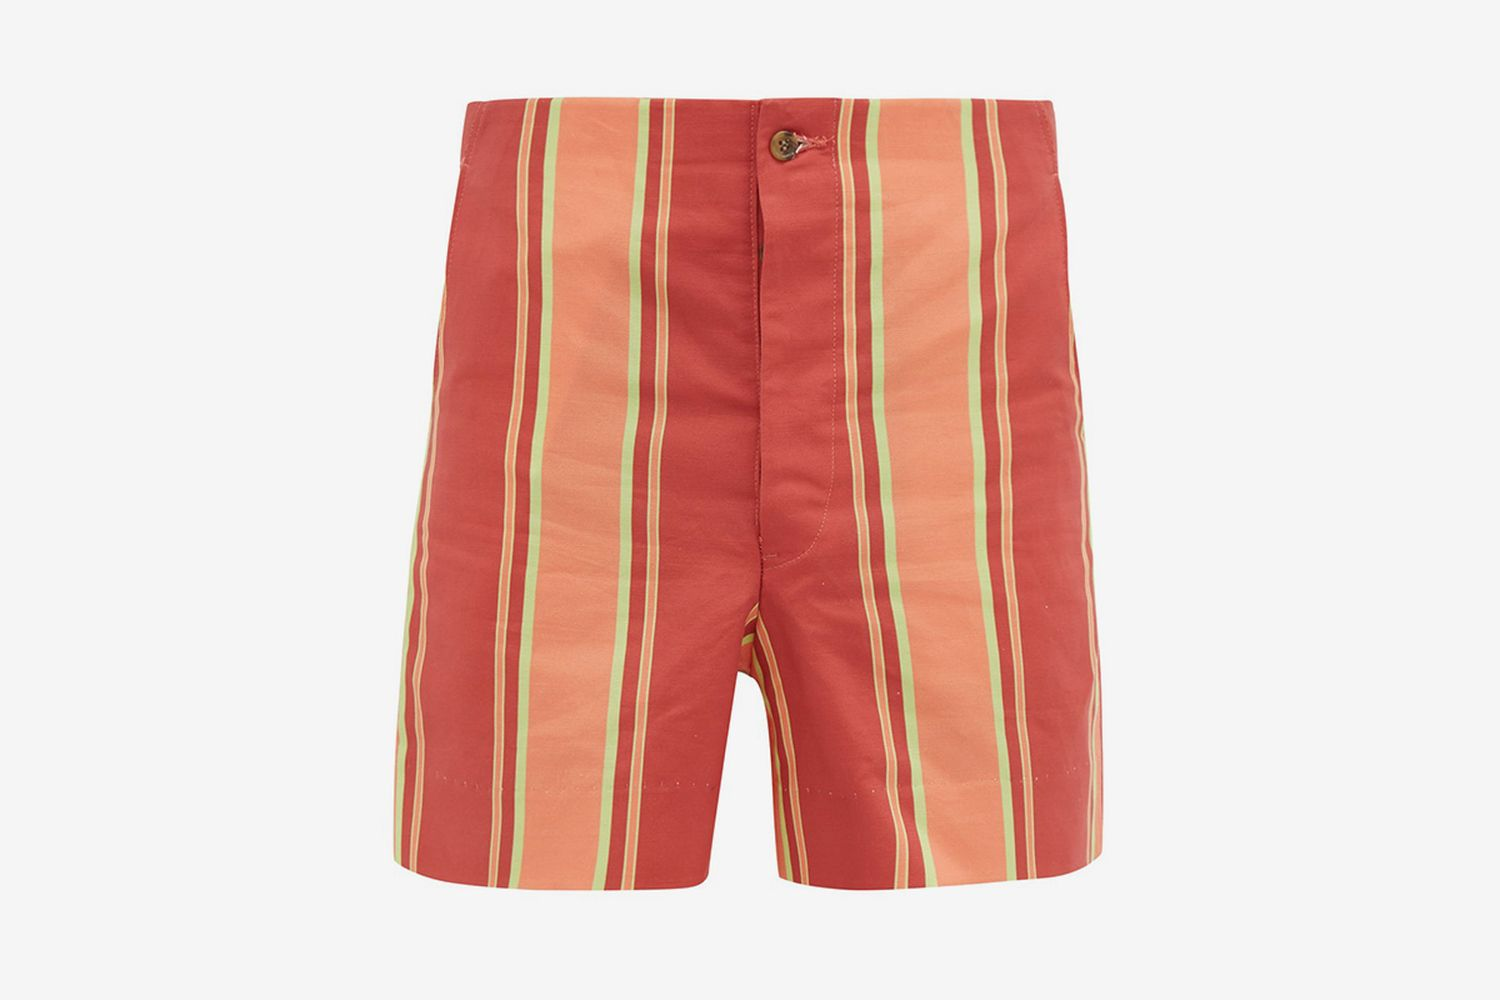 Rajasthan Striped Cotton Shorts